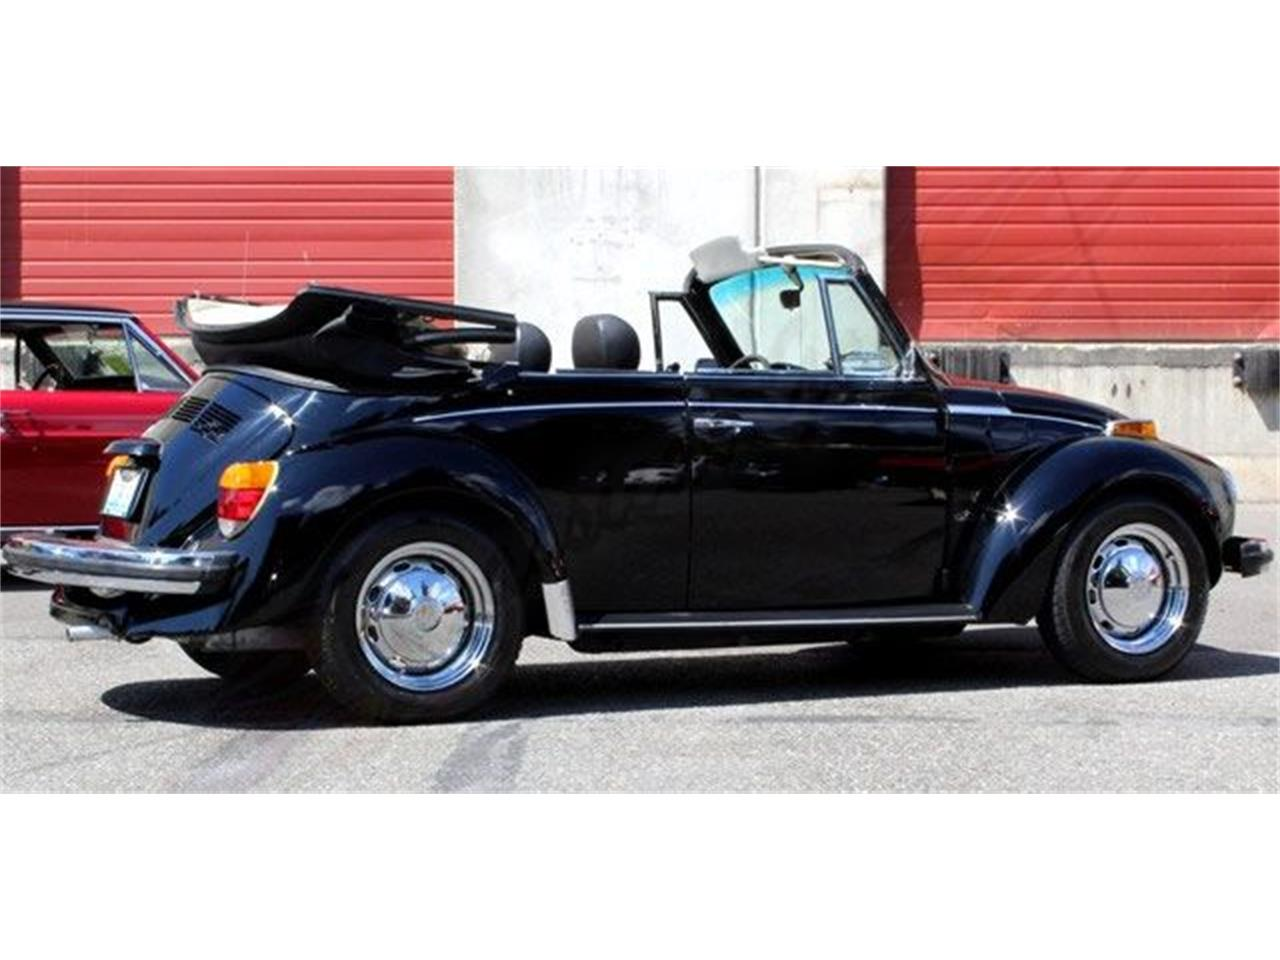 Large Picture of 1979 Beetle - $12,500.00 - J4TV